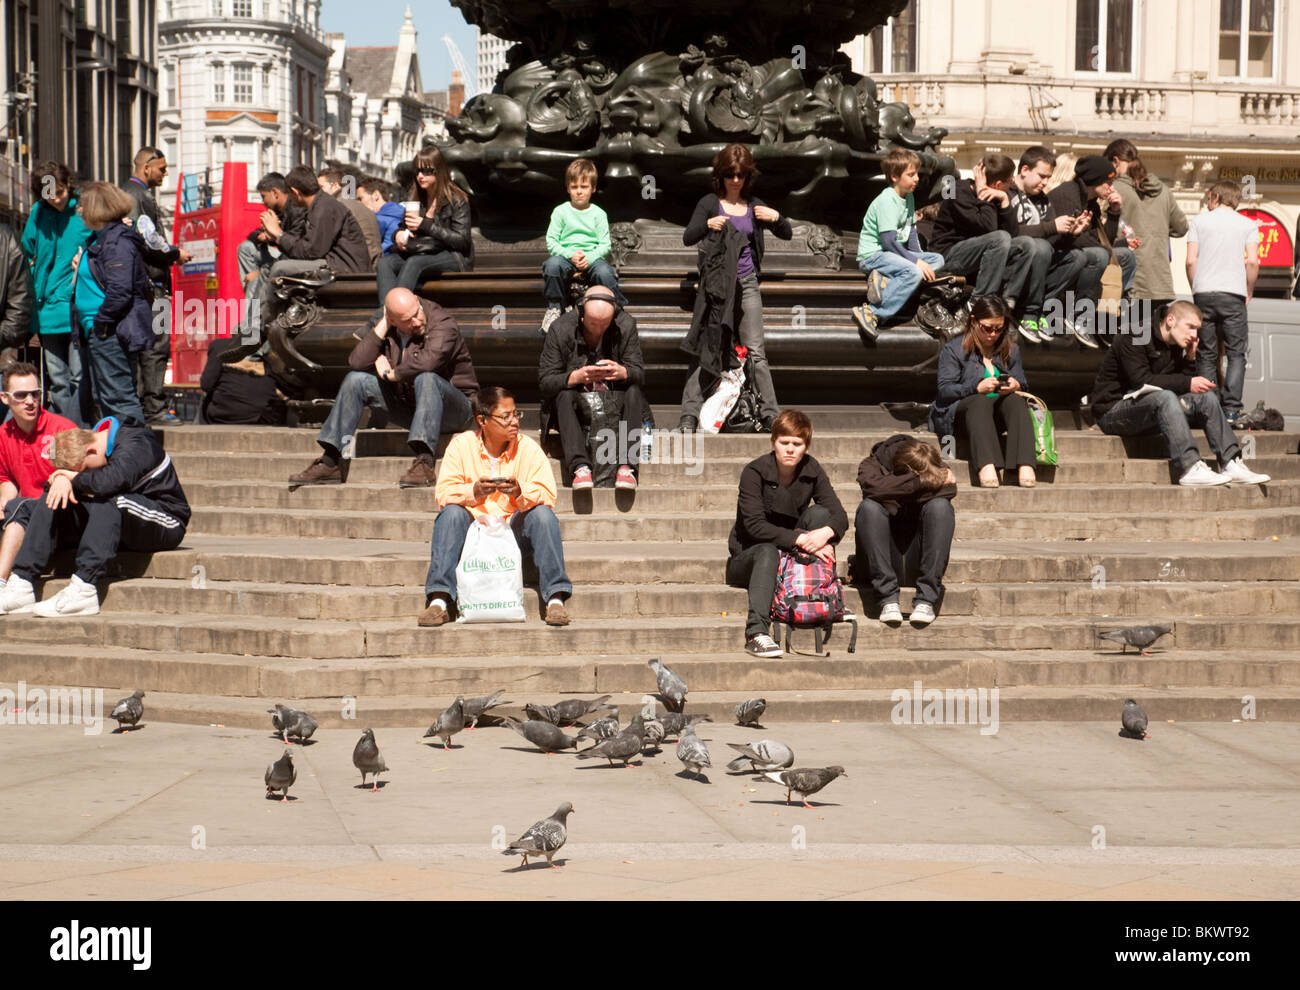 Tourists around the statue of Eros, Piccadilly Circus, London UK - Stock Image